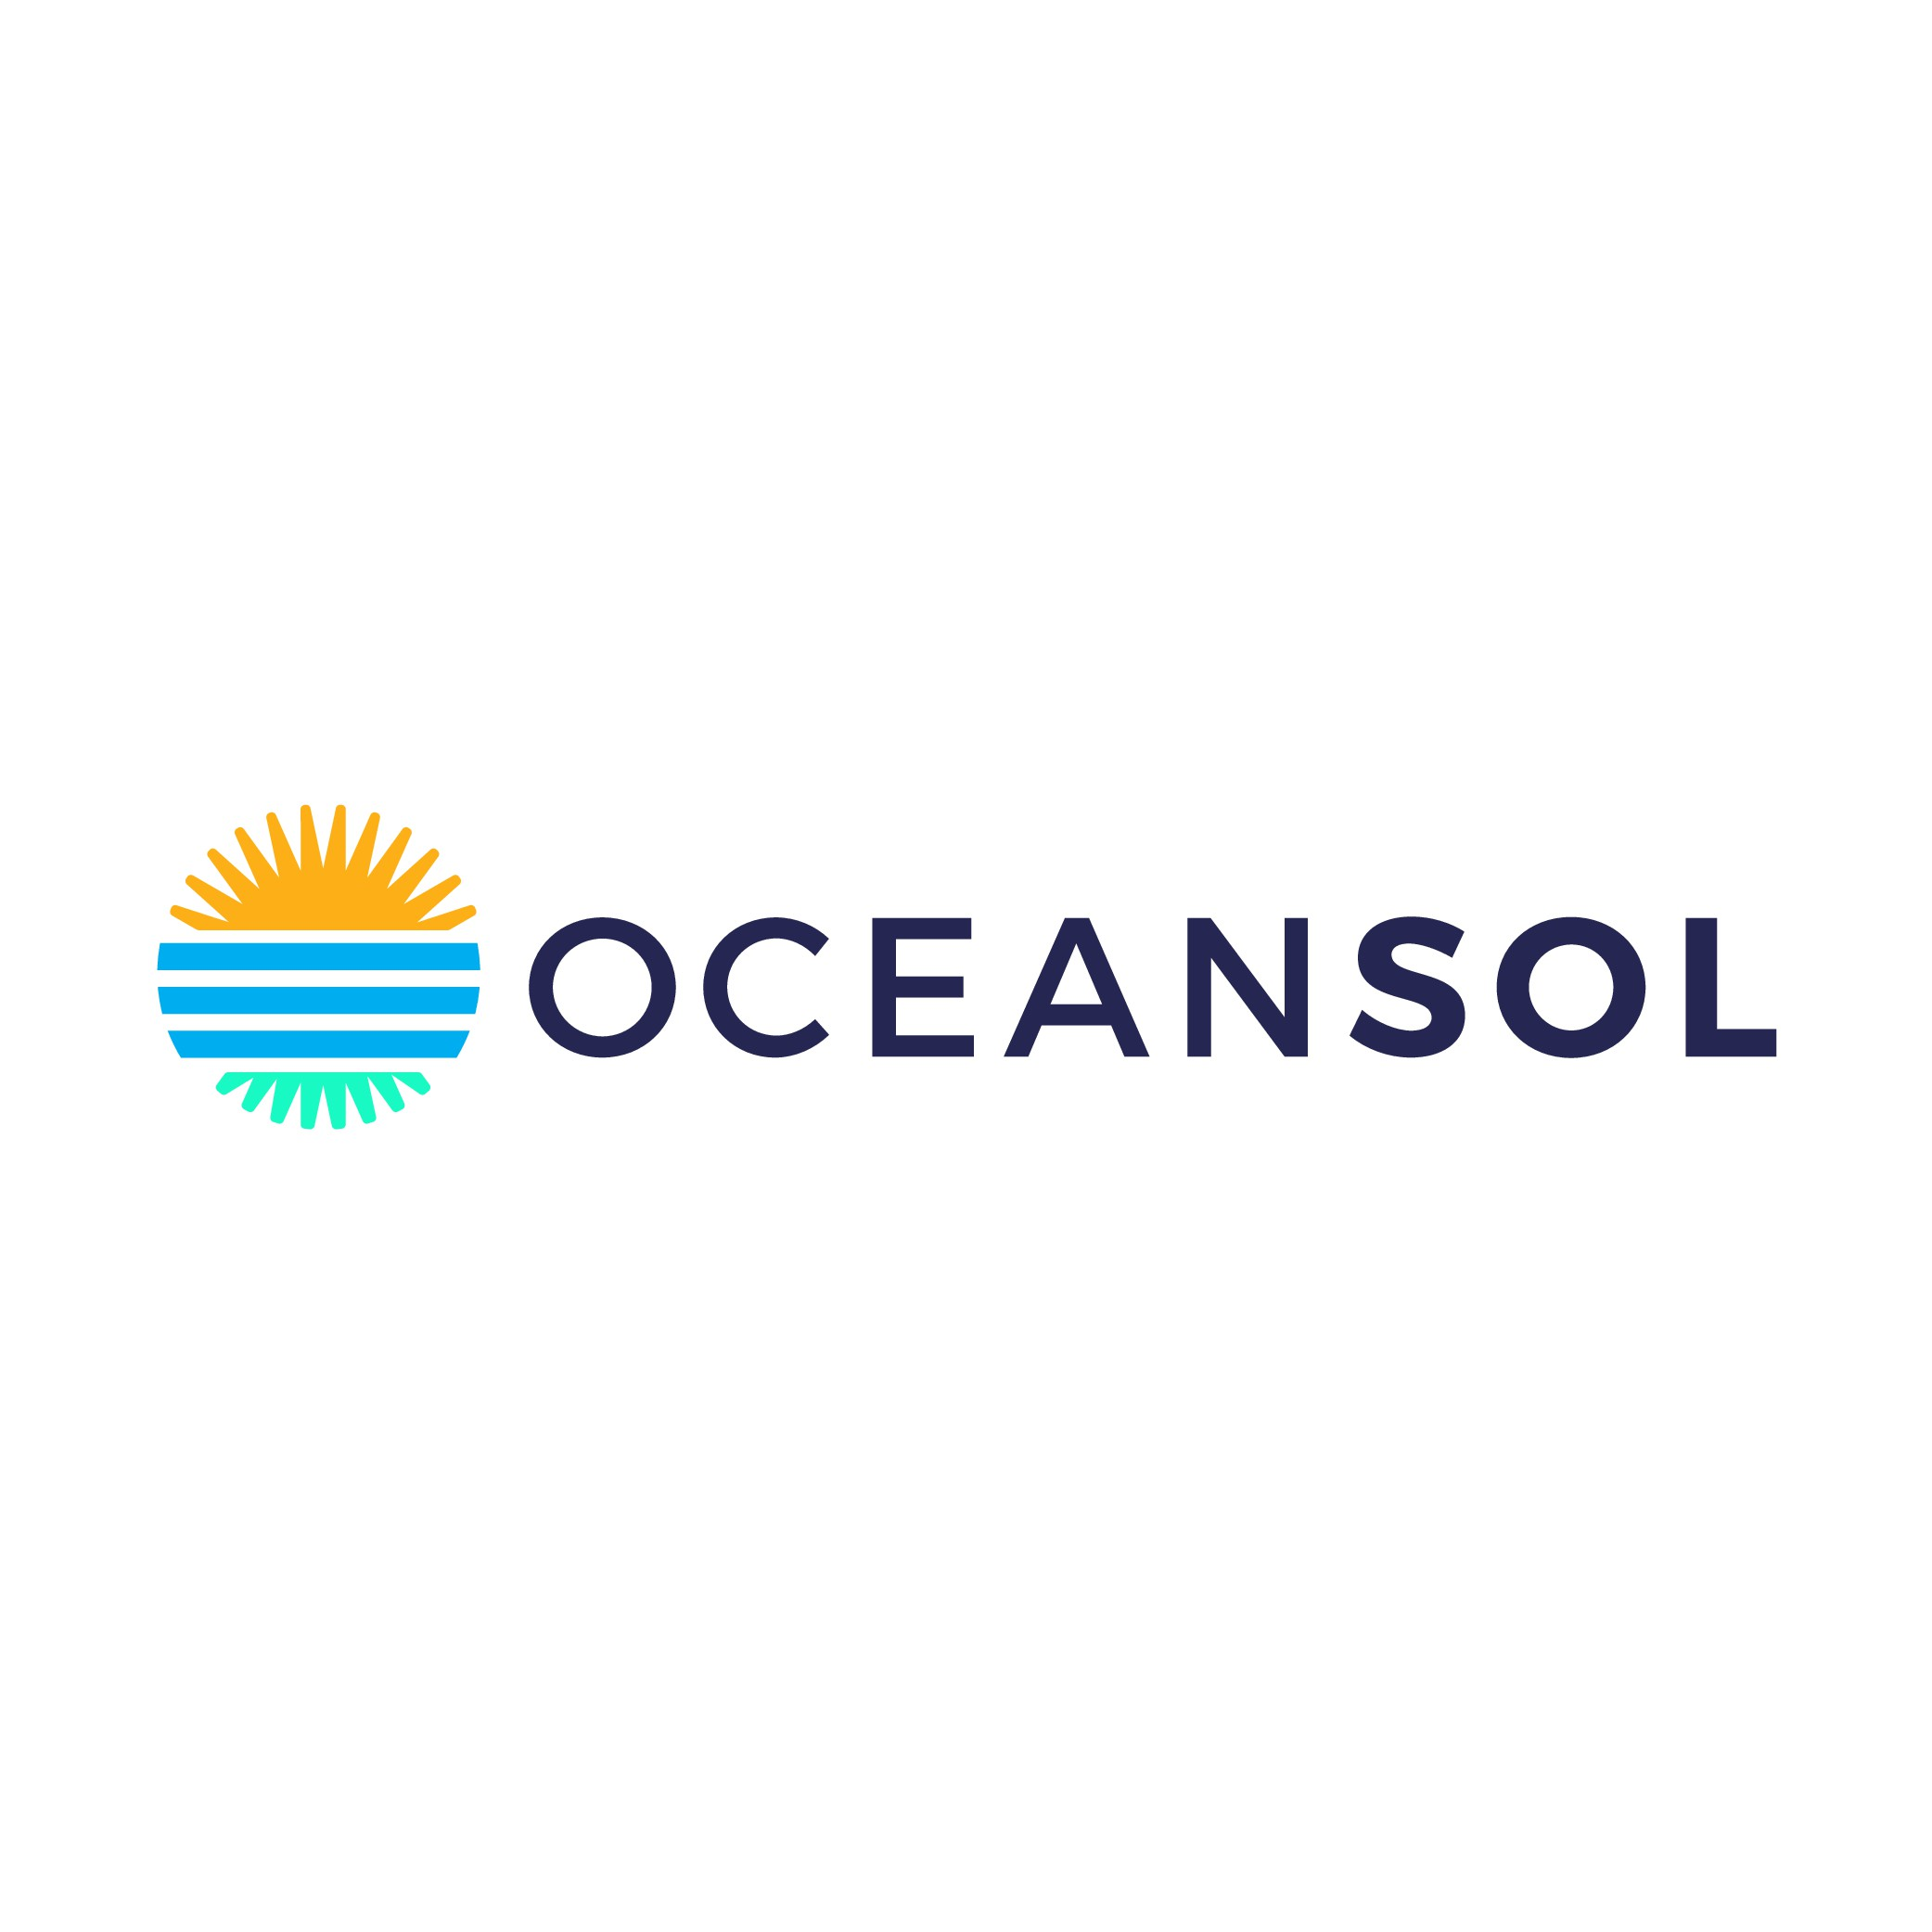 Need iconic logo for OceanSol brand